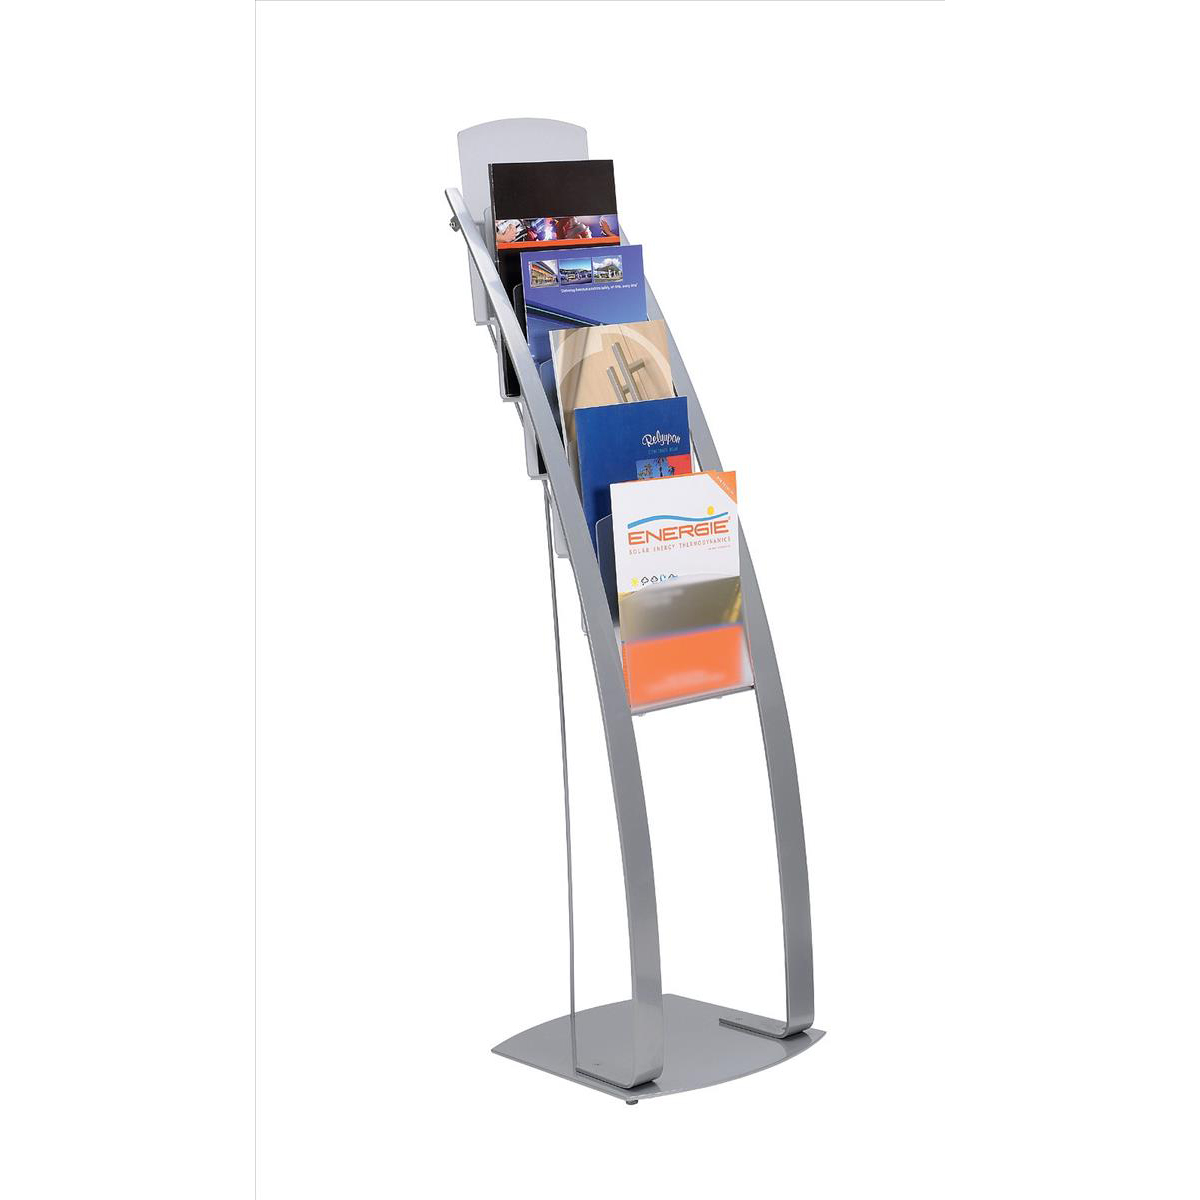 Literature Holders Deflecto Contemporary Literature Display Flr Stand 6x A4 Pkts 375x380x1260mm Slv Ref DE693145